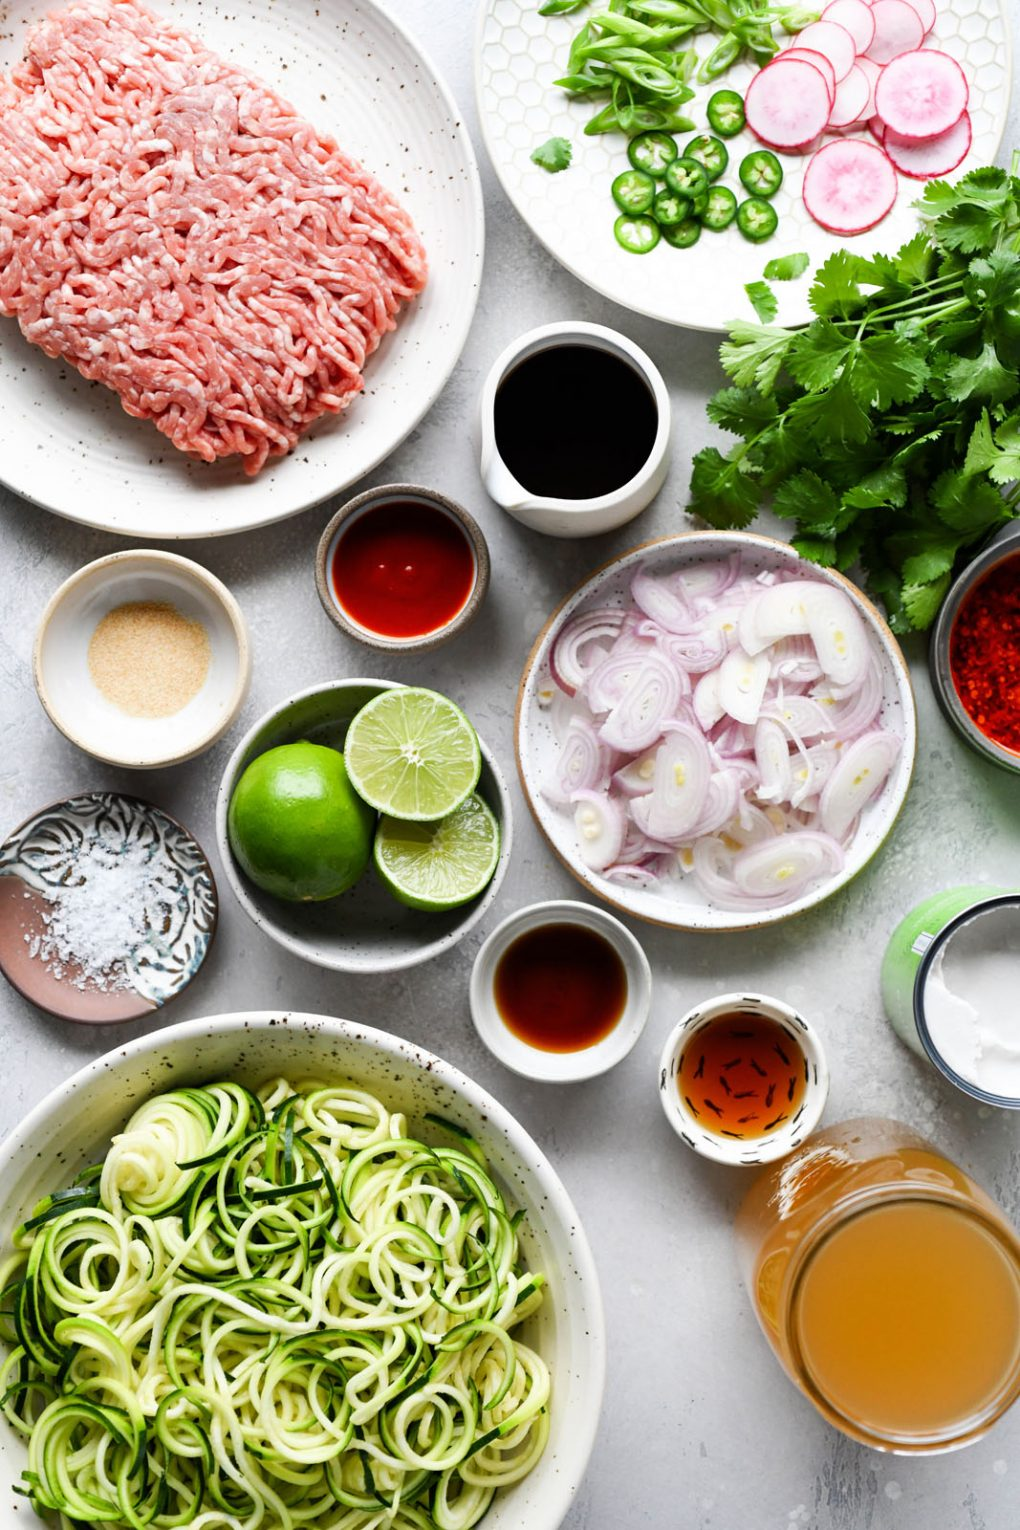 Overhead shot of the different ingredients needed to make this crispy pork and zucchini noodle coconut soup. Ground pork, thinly sliced shallots, zoodles, chicken broth, spices, limes, cilantro, and various sauces in small bowls. On a light colored background.